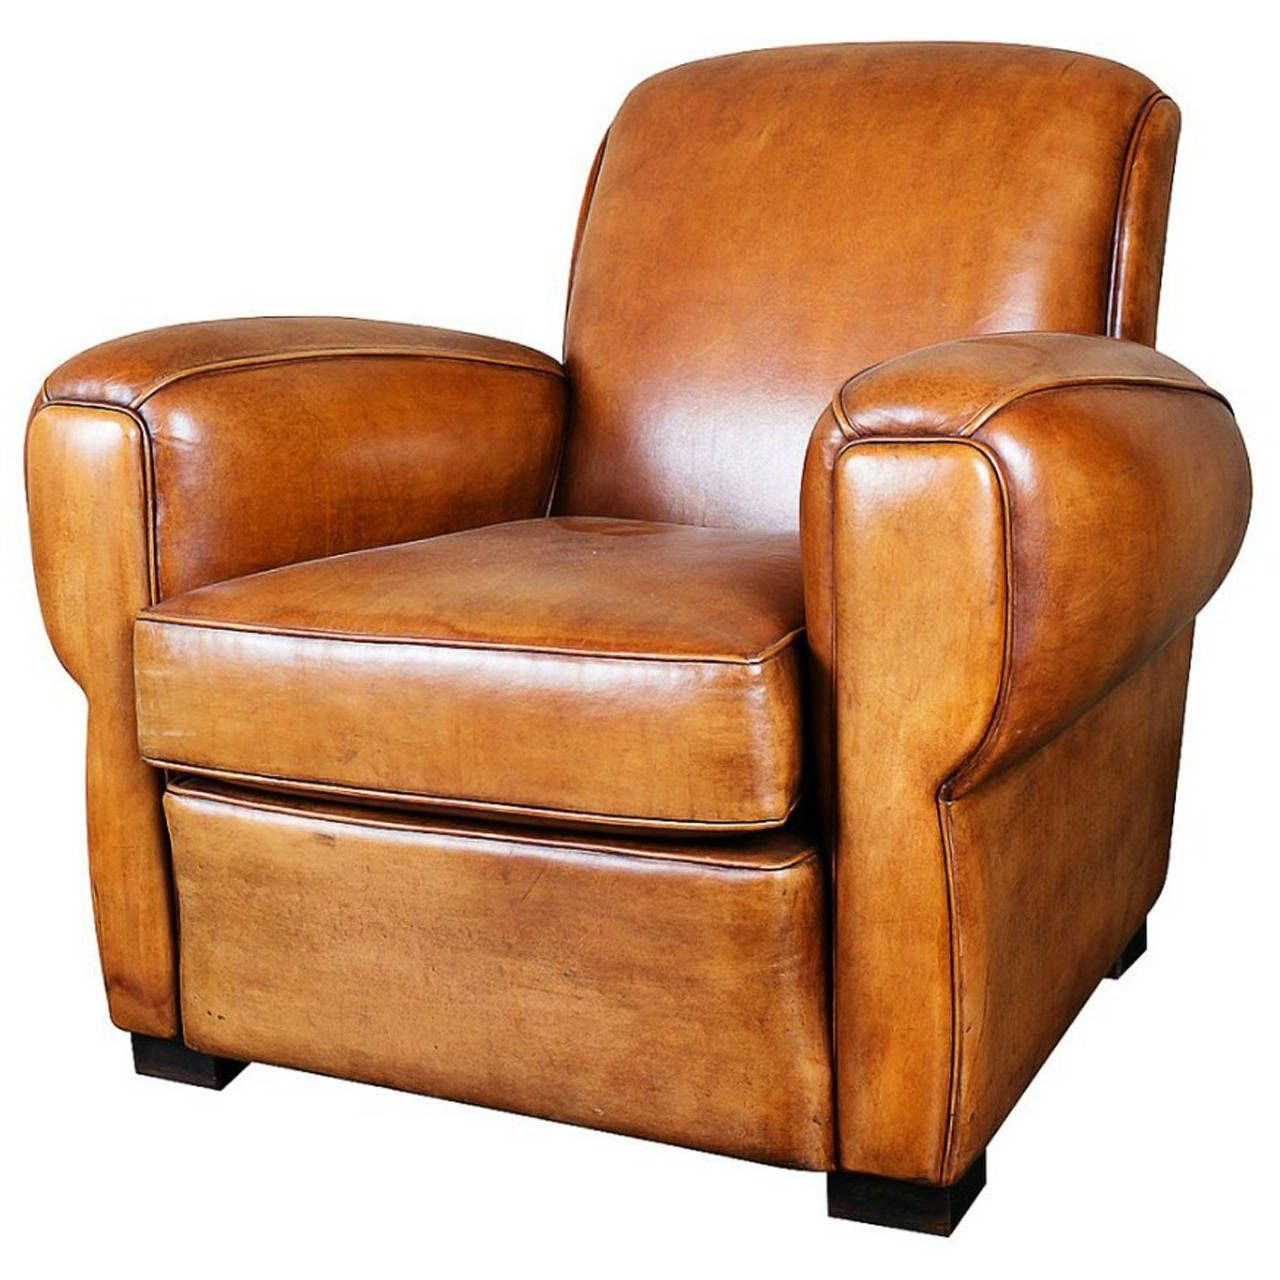 french art deco leather club chair in 2019 furniture leather rh pinterest com